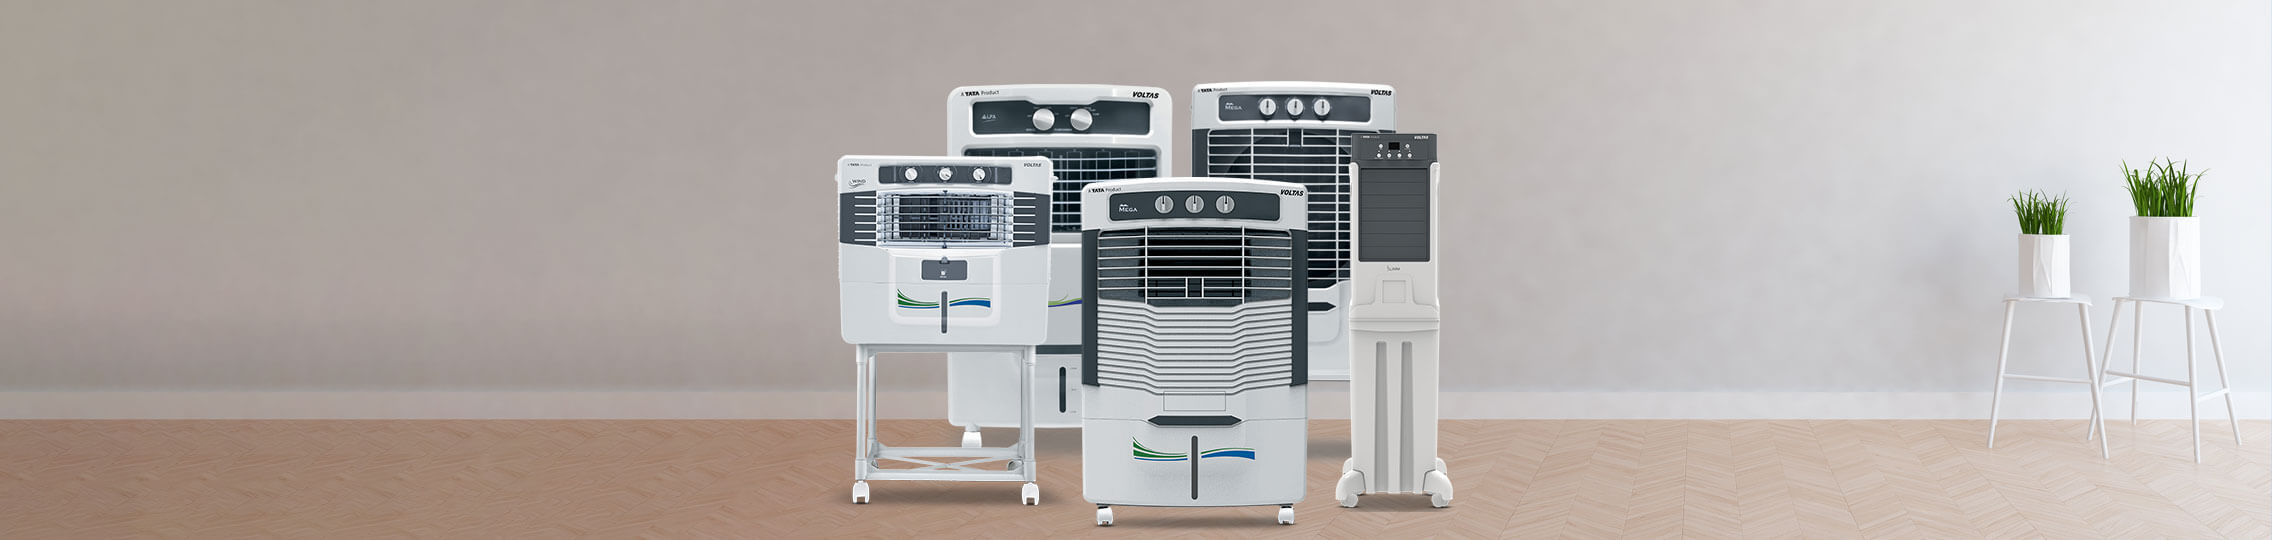 How to Select the Right Air Cooler for Your Home?